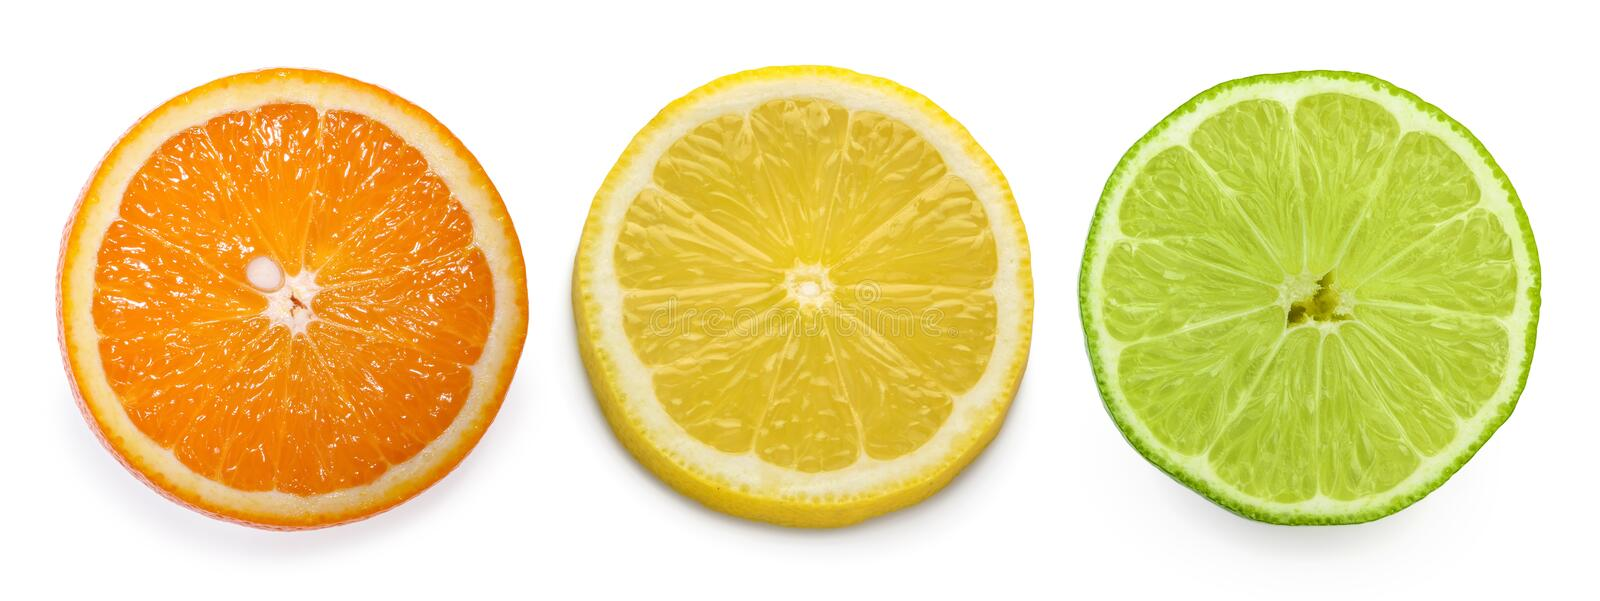 Citrus slice, orange, lemon, lime, isolated on white background stock photo